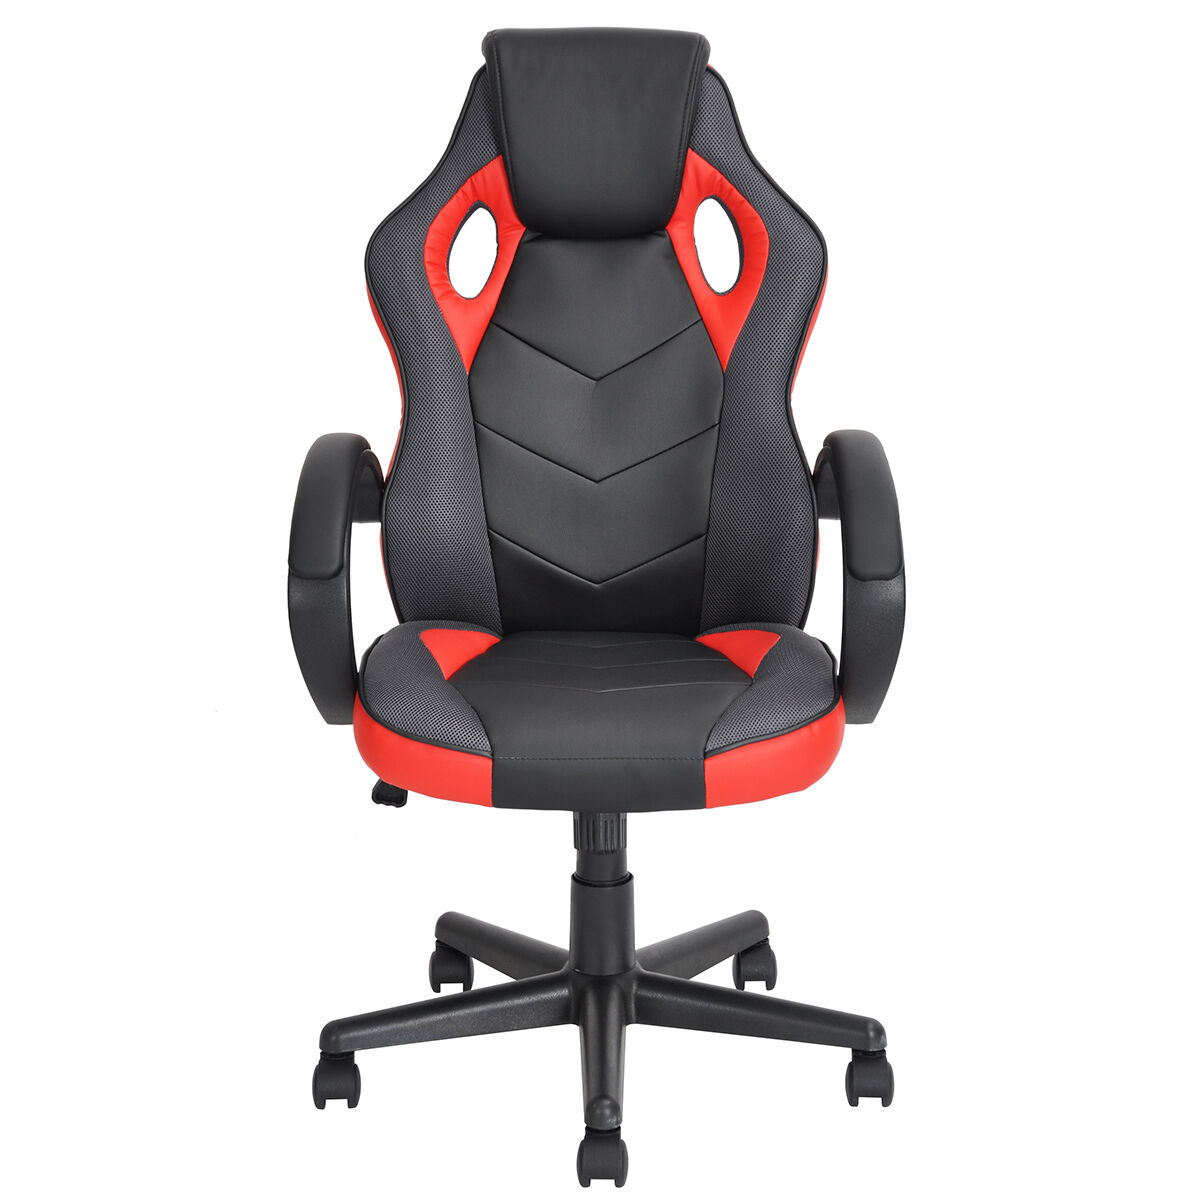 Phenomenal Office Racing Chair Home Design Ideas Machost Co Dining Chair Design Ideas Machostcouk